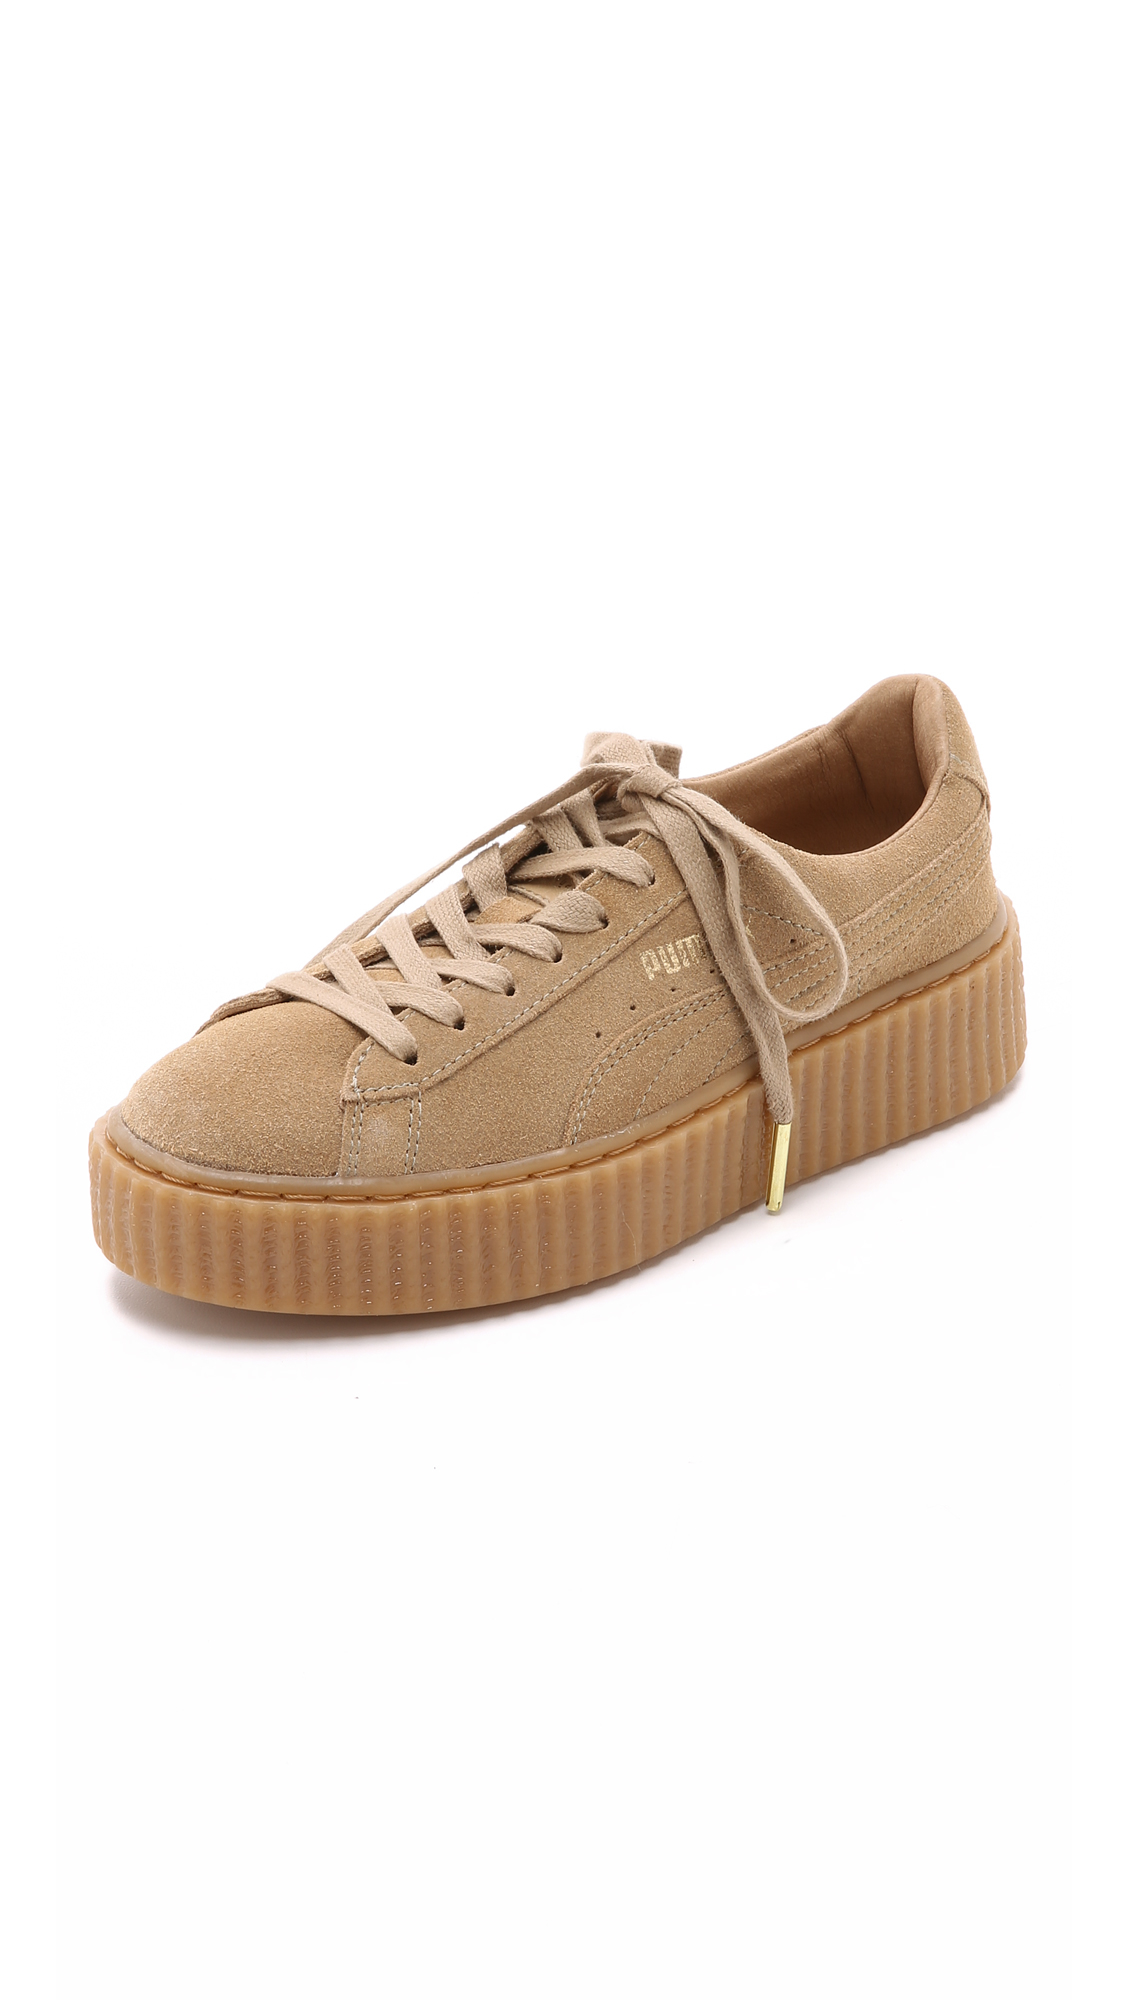 Lyst - PUMA X Rihanna Creeper Sneakers - Brown in Brown 450220939e